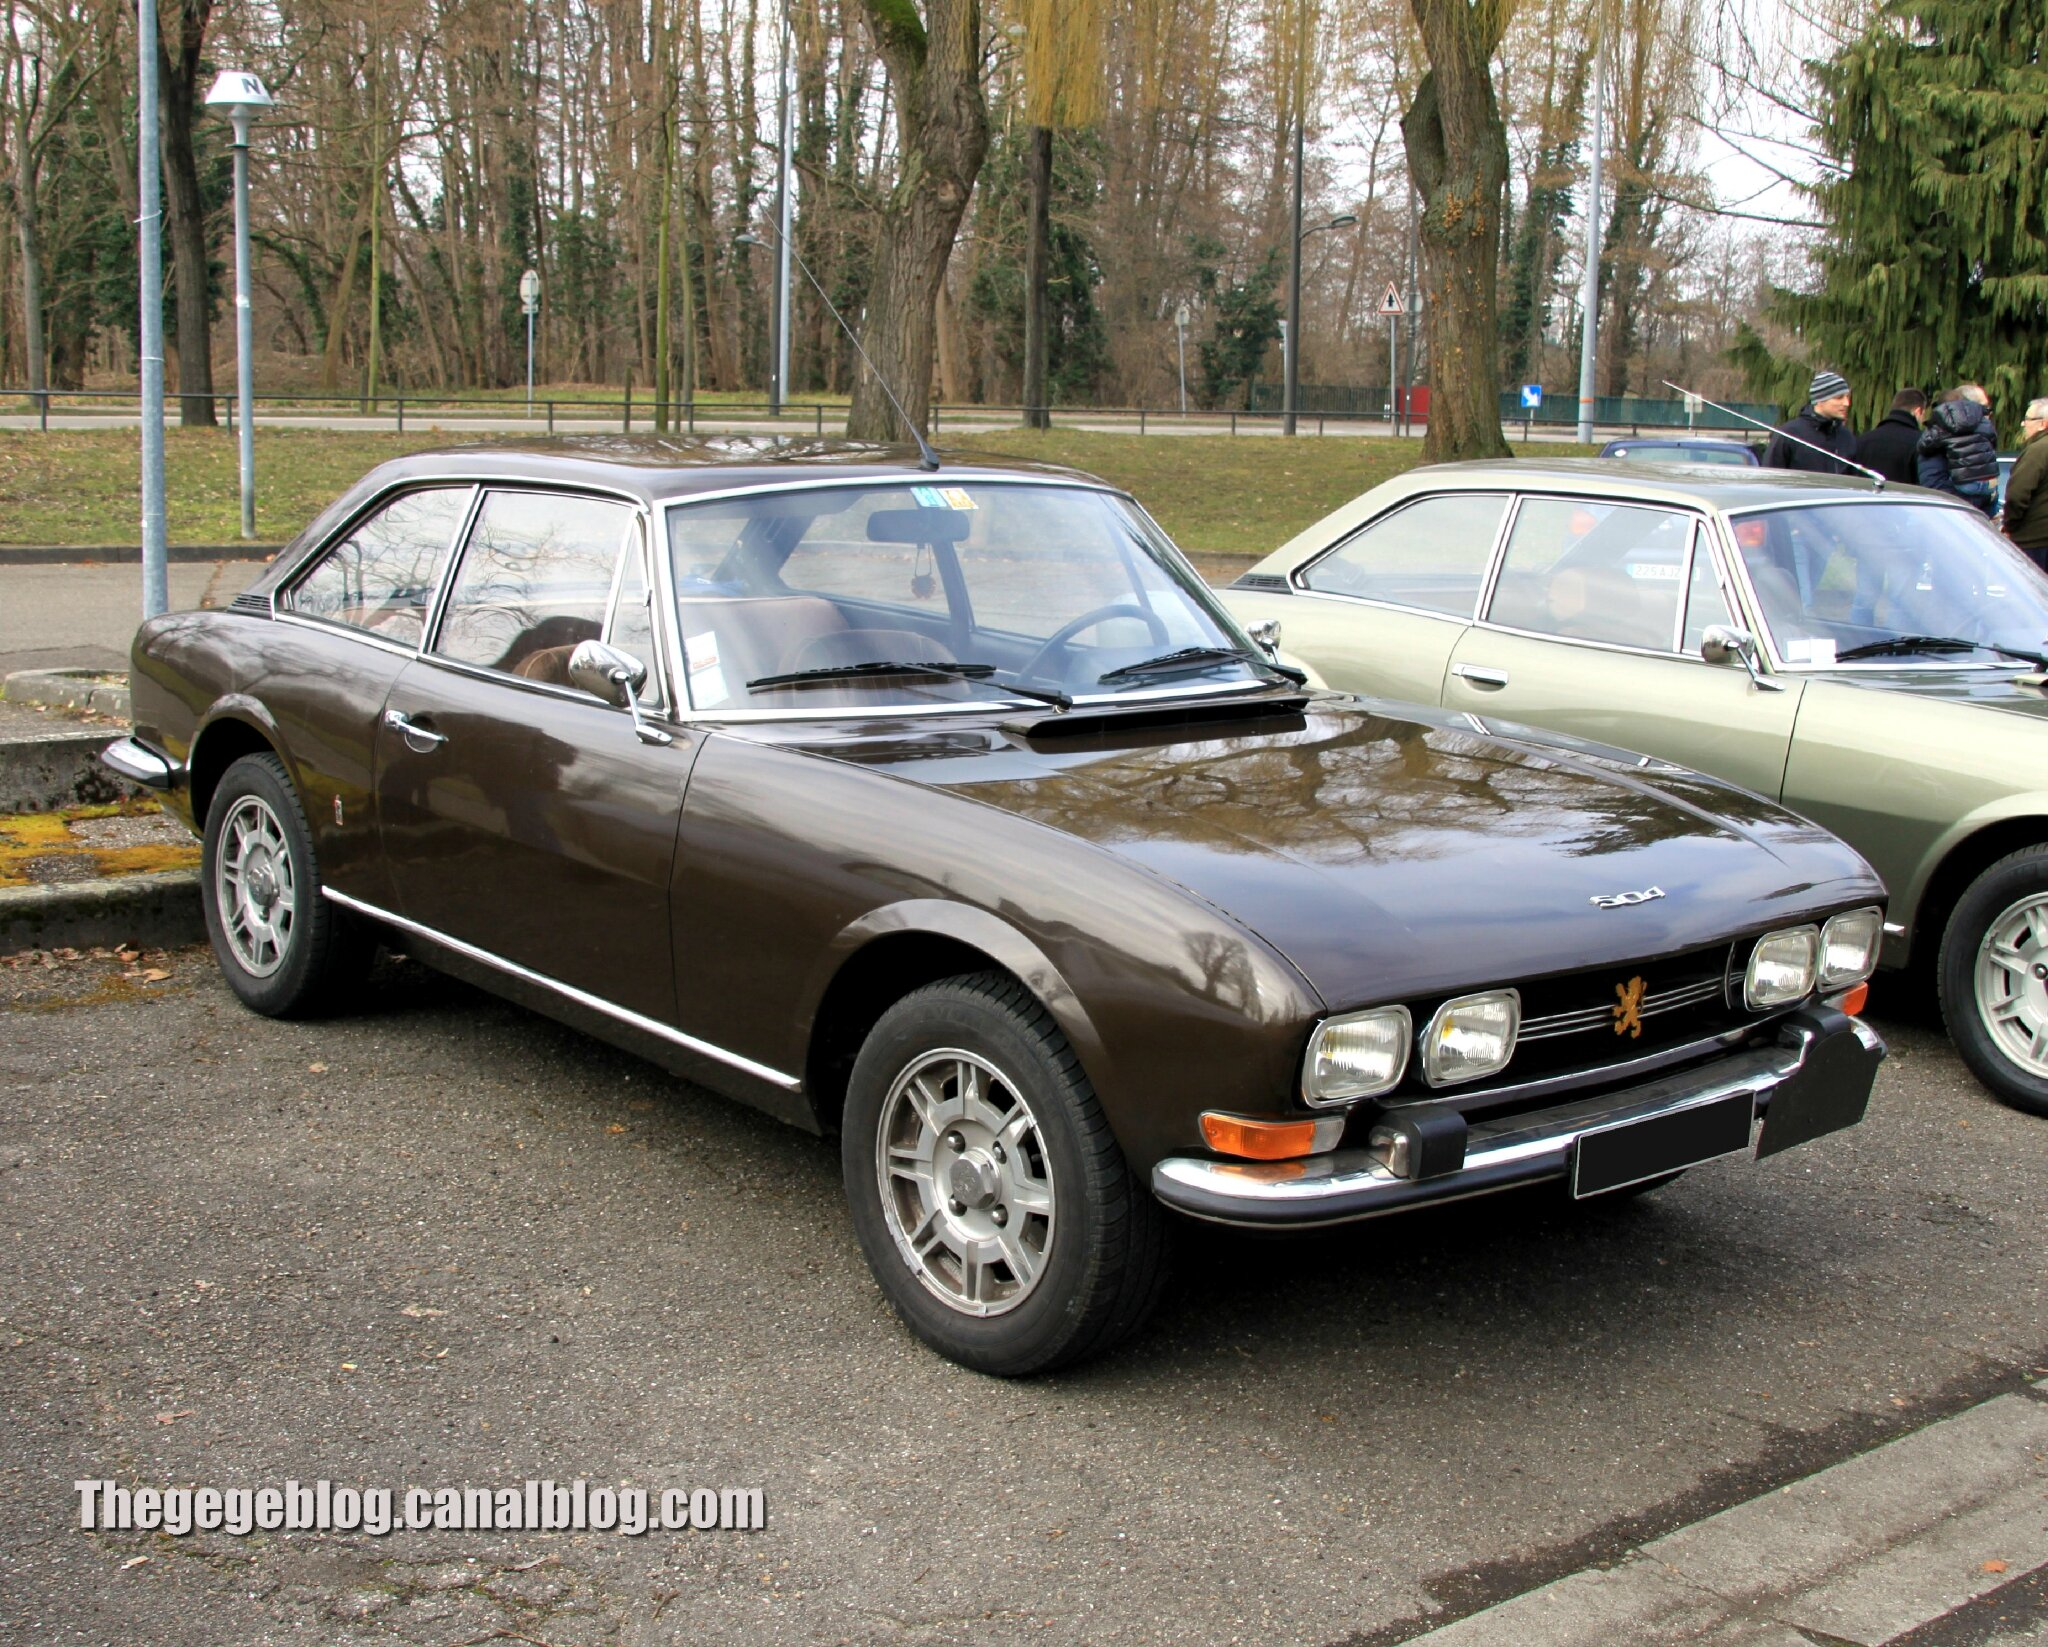 Peugeot 504 coupé (Retrorencard mars 2013) - The gégé blog